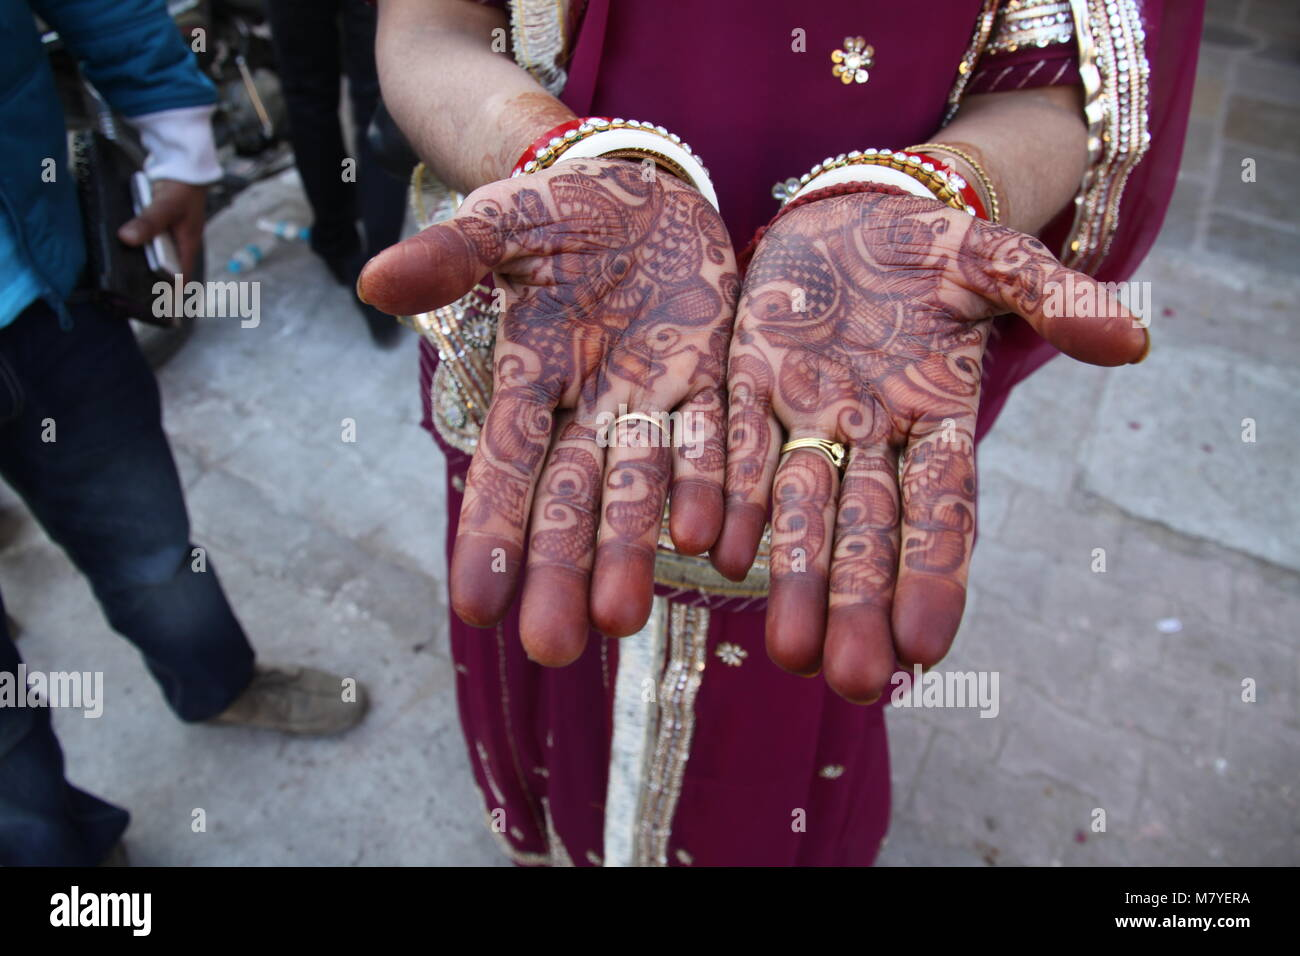 Henna Or Mehndi : Henna or mehndi decorations for weddings and other celebrations